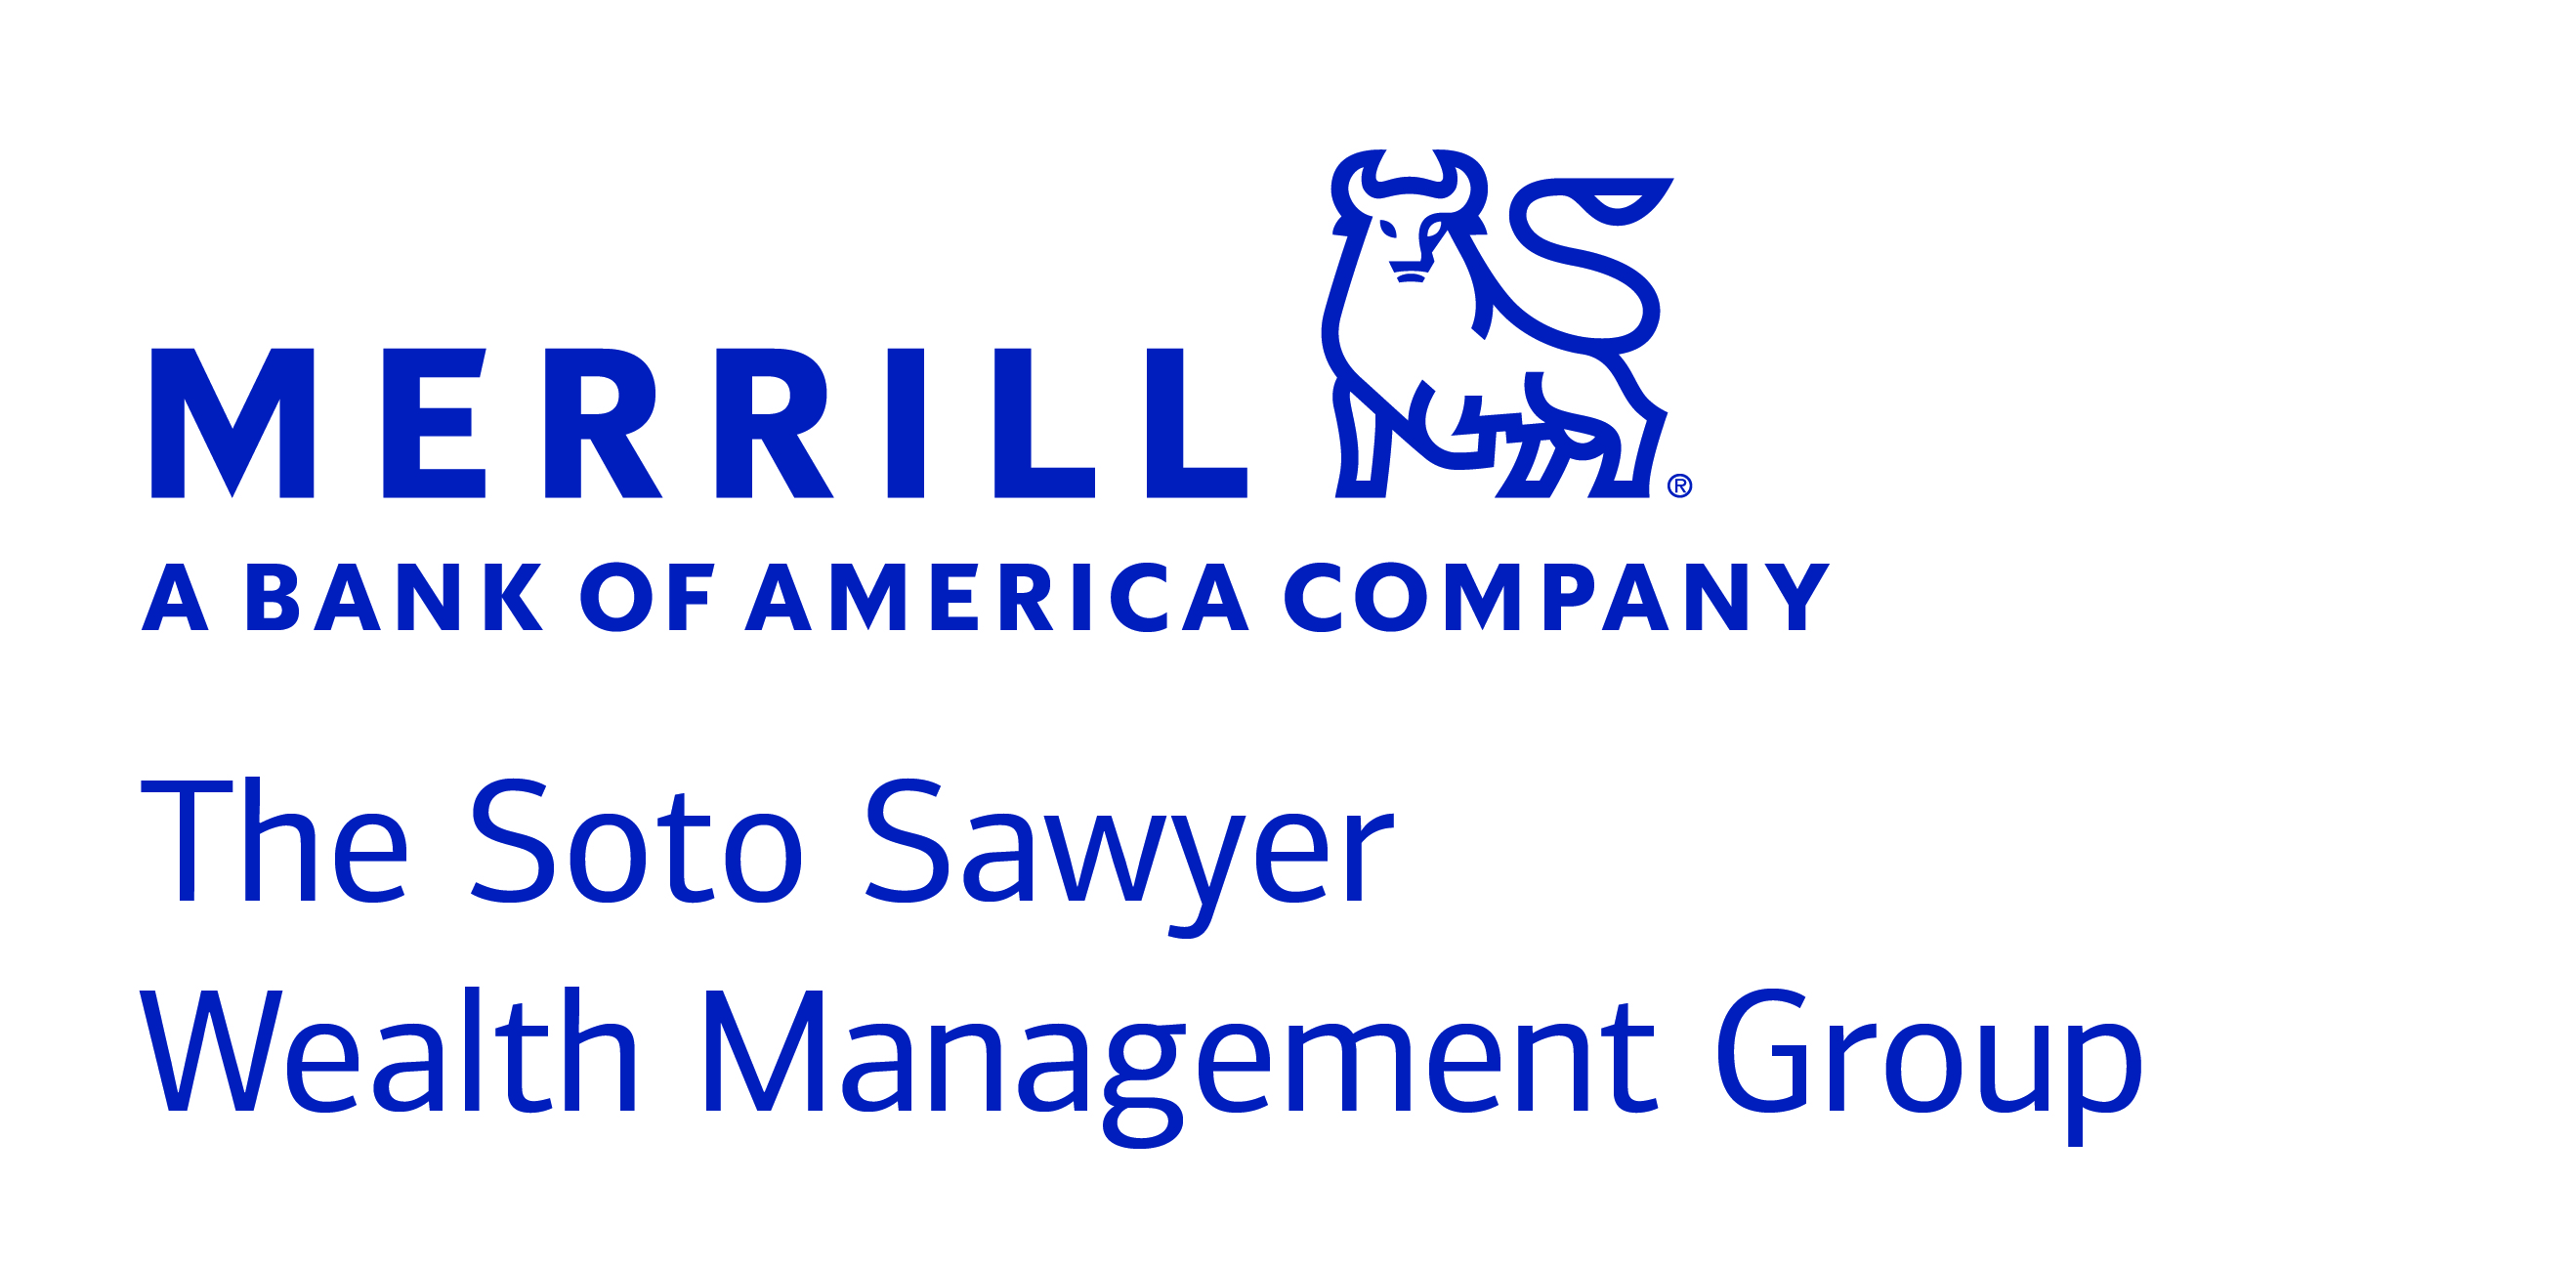 Merrill Lynch Soto Sawyer Wealth Management Group Logo